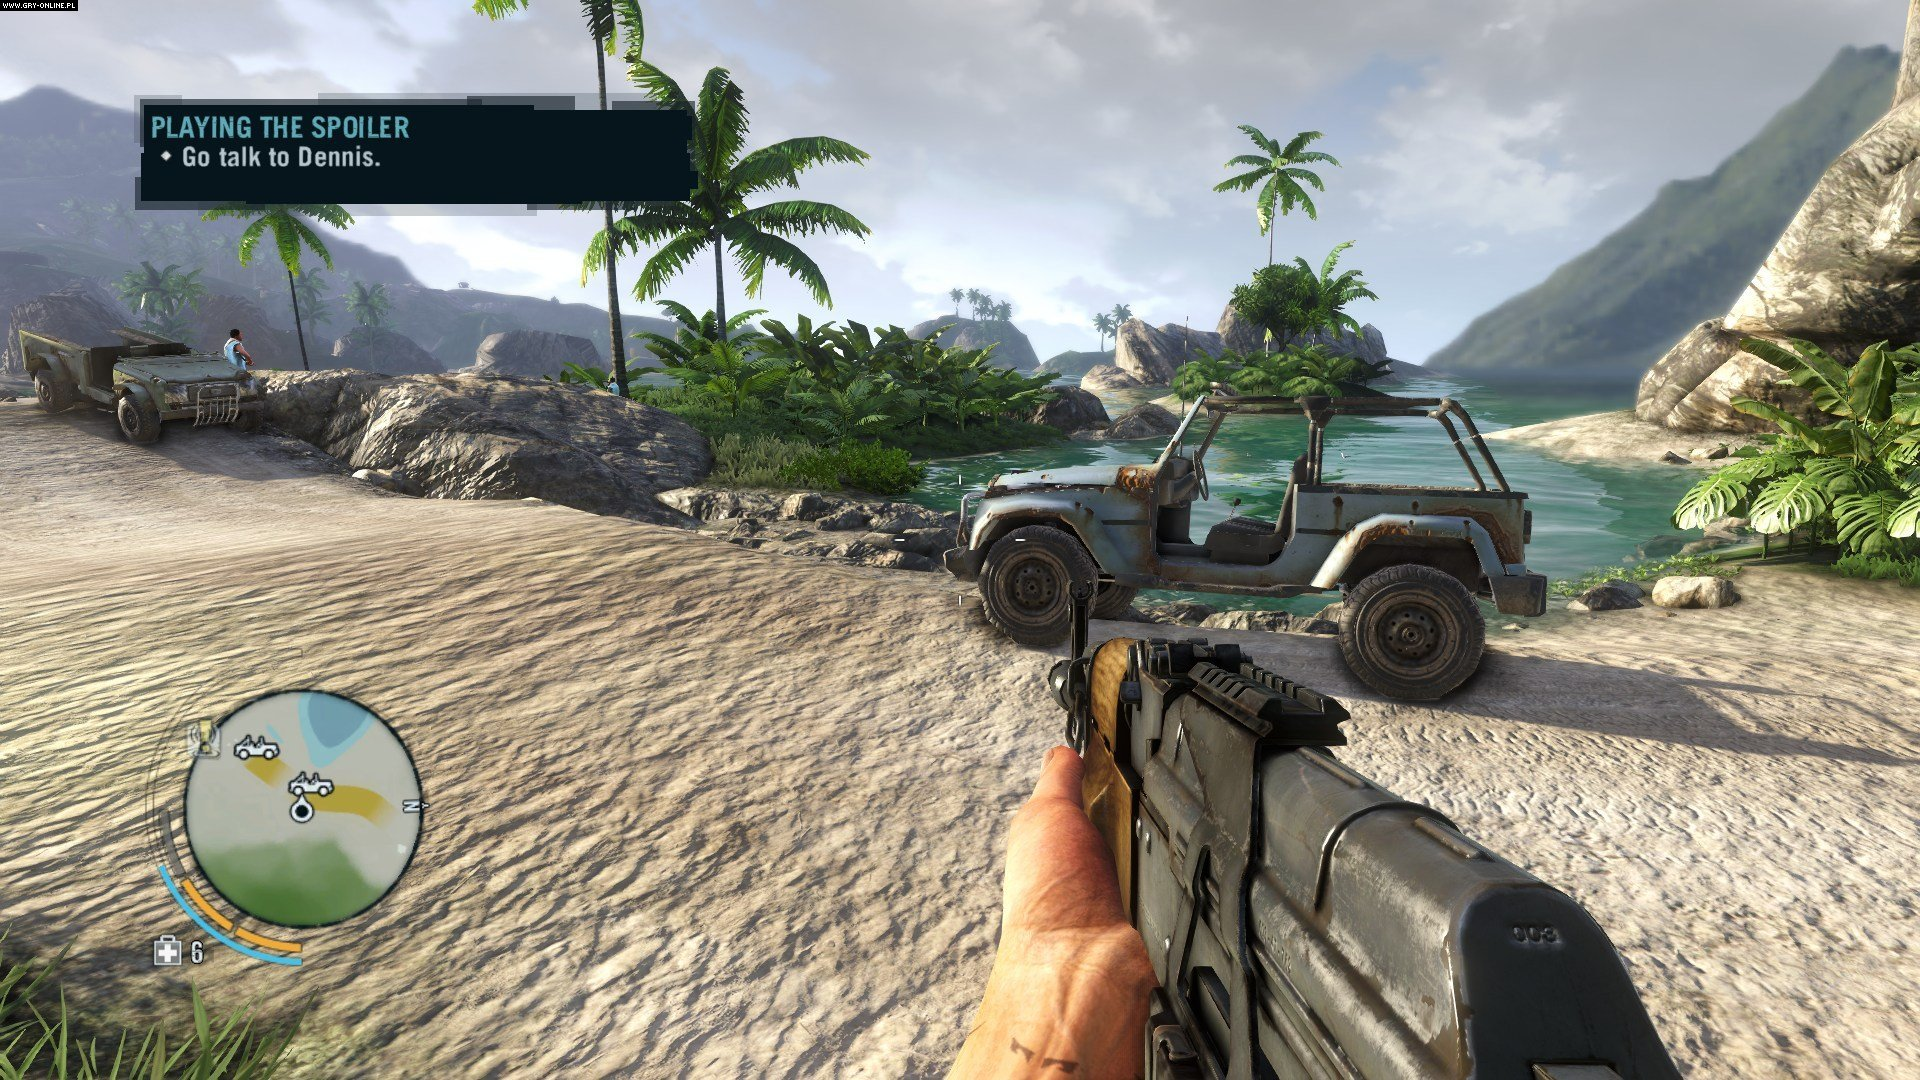 Far Cry 3 PC, X360, PS3 Games Image 28/87, Ubisoft